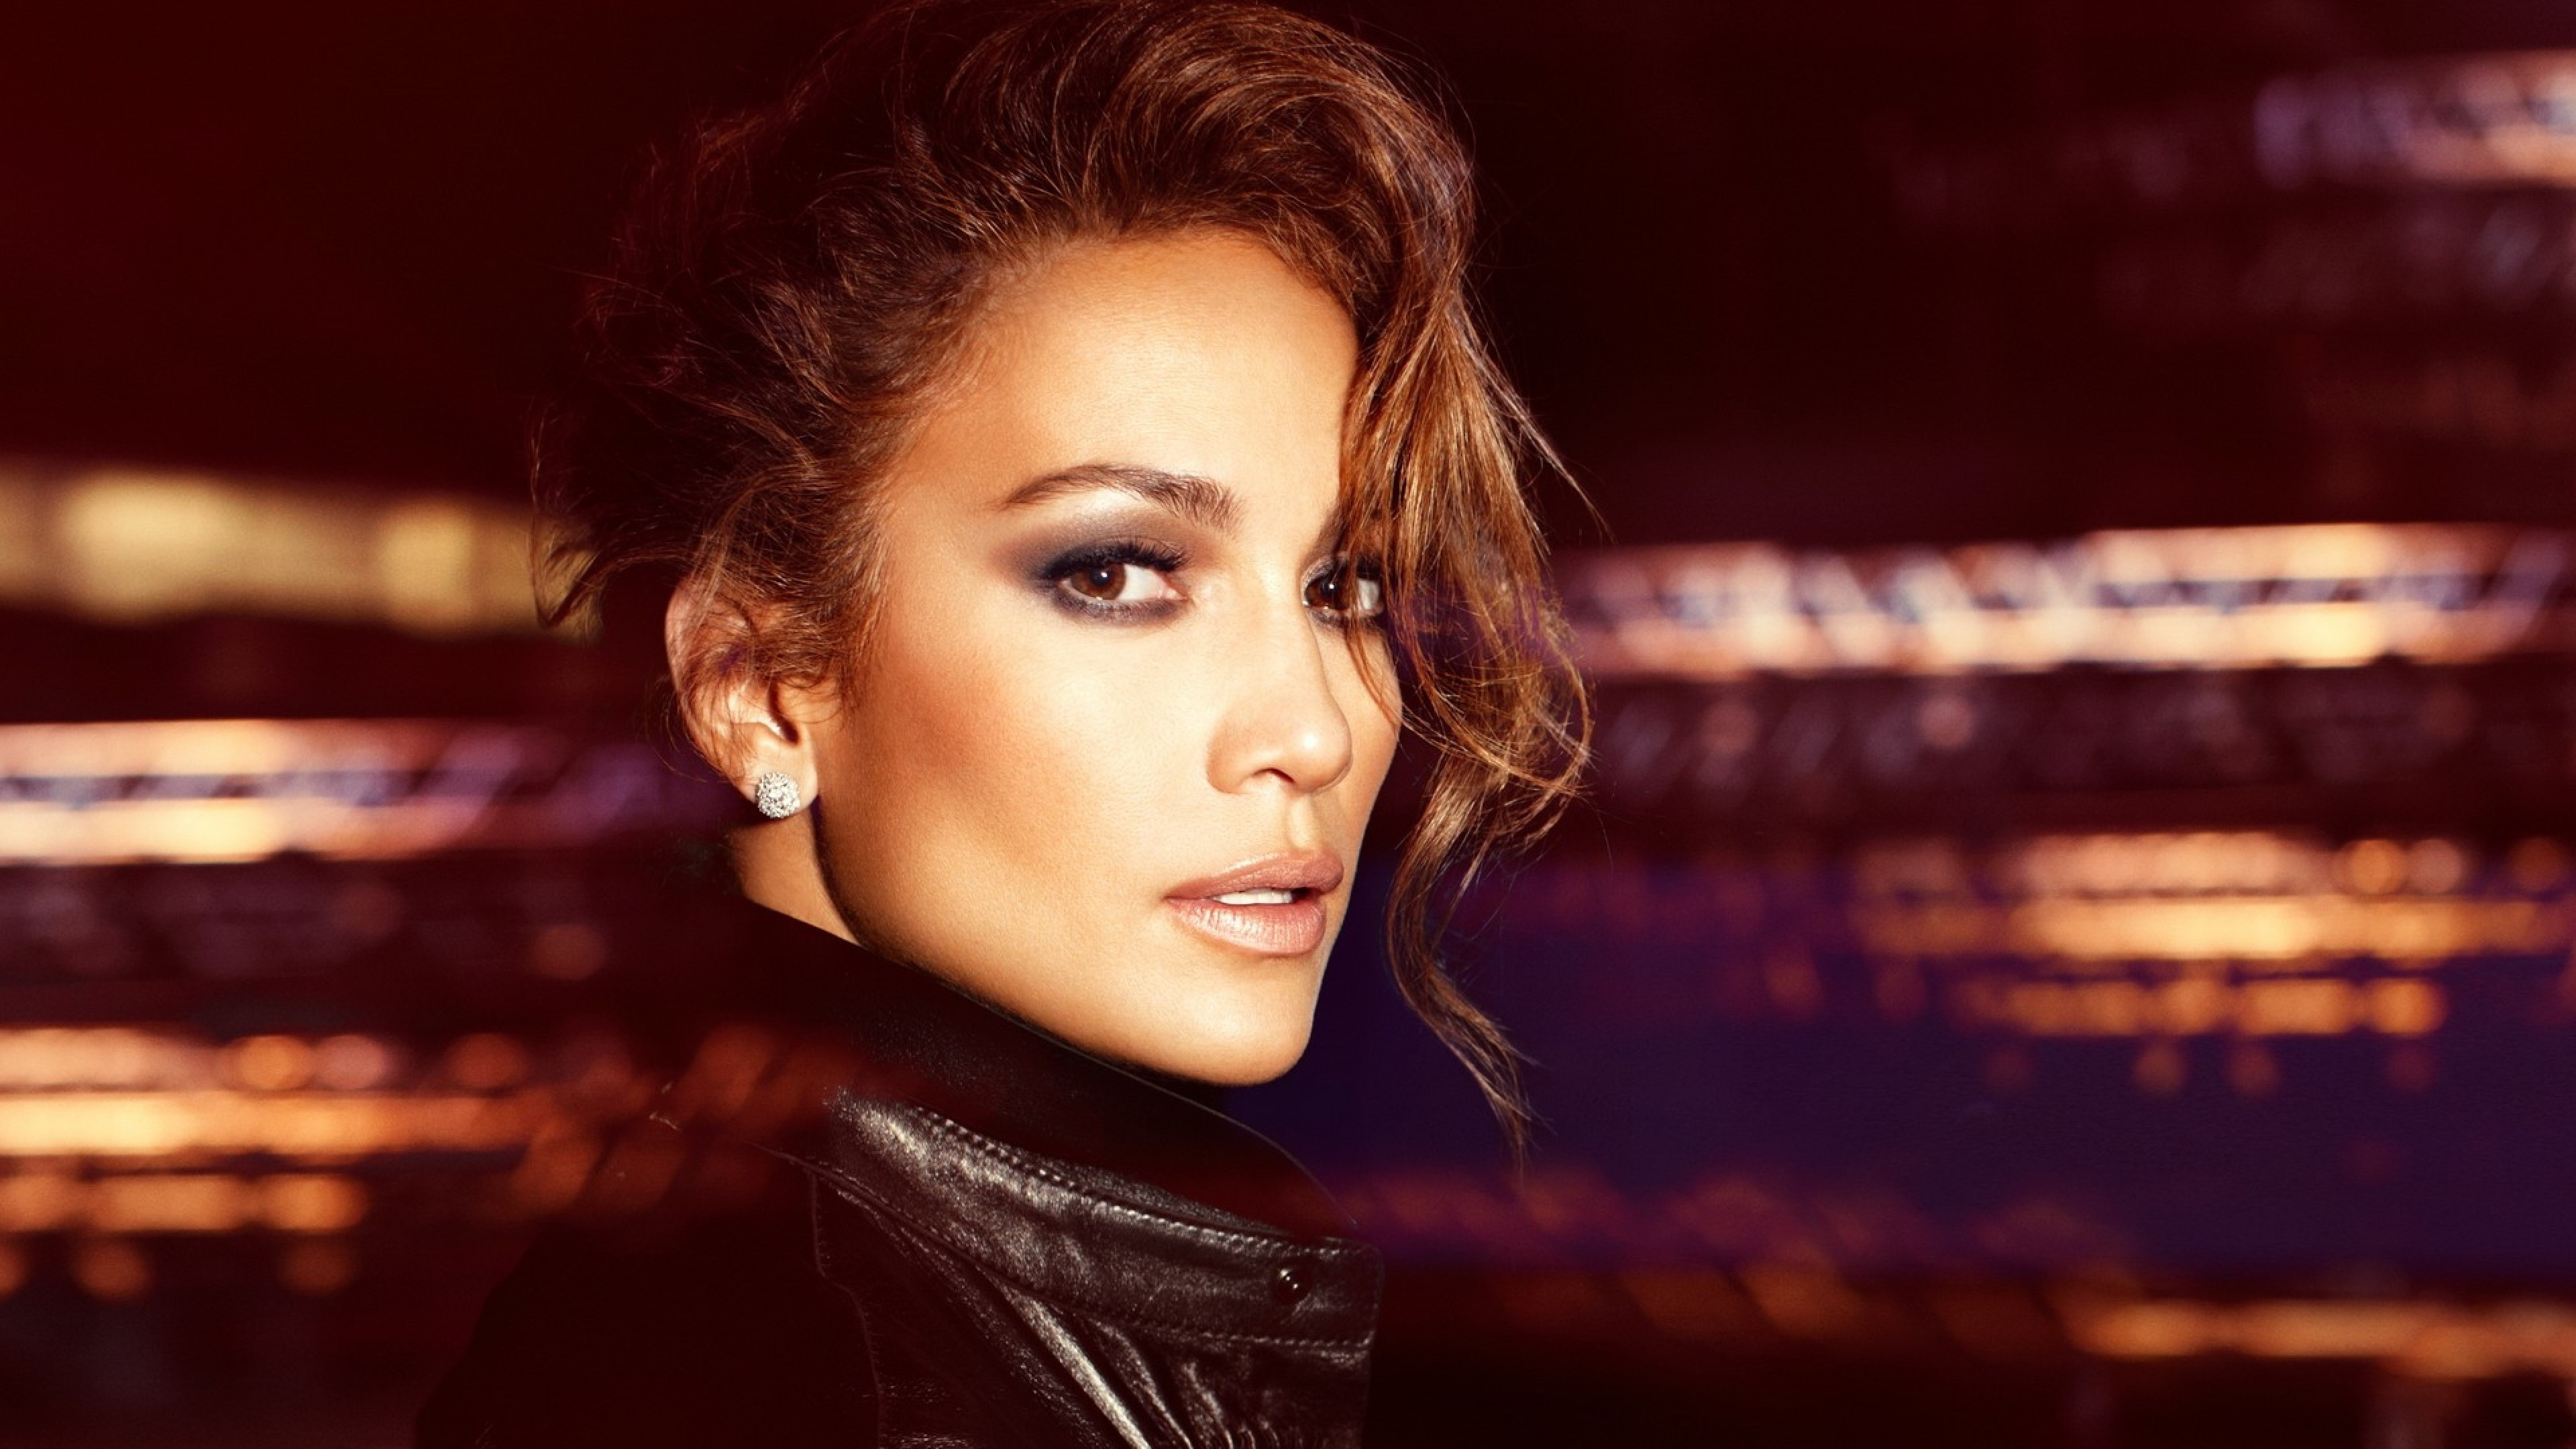 2048x2048 Anthem Ipad Air Hd 4k Wallpapers Images: 2048x2048 Jennifer Lopez 2 Ipad Air HD 4k Wallpapers